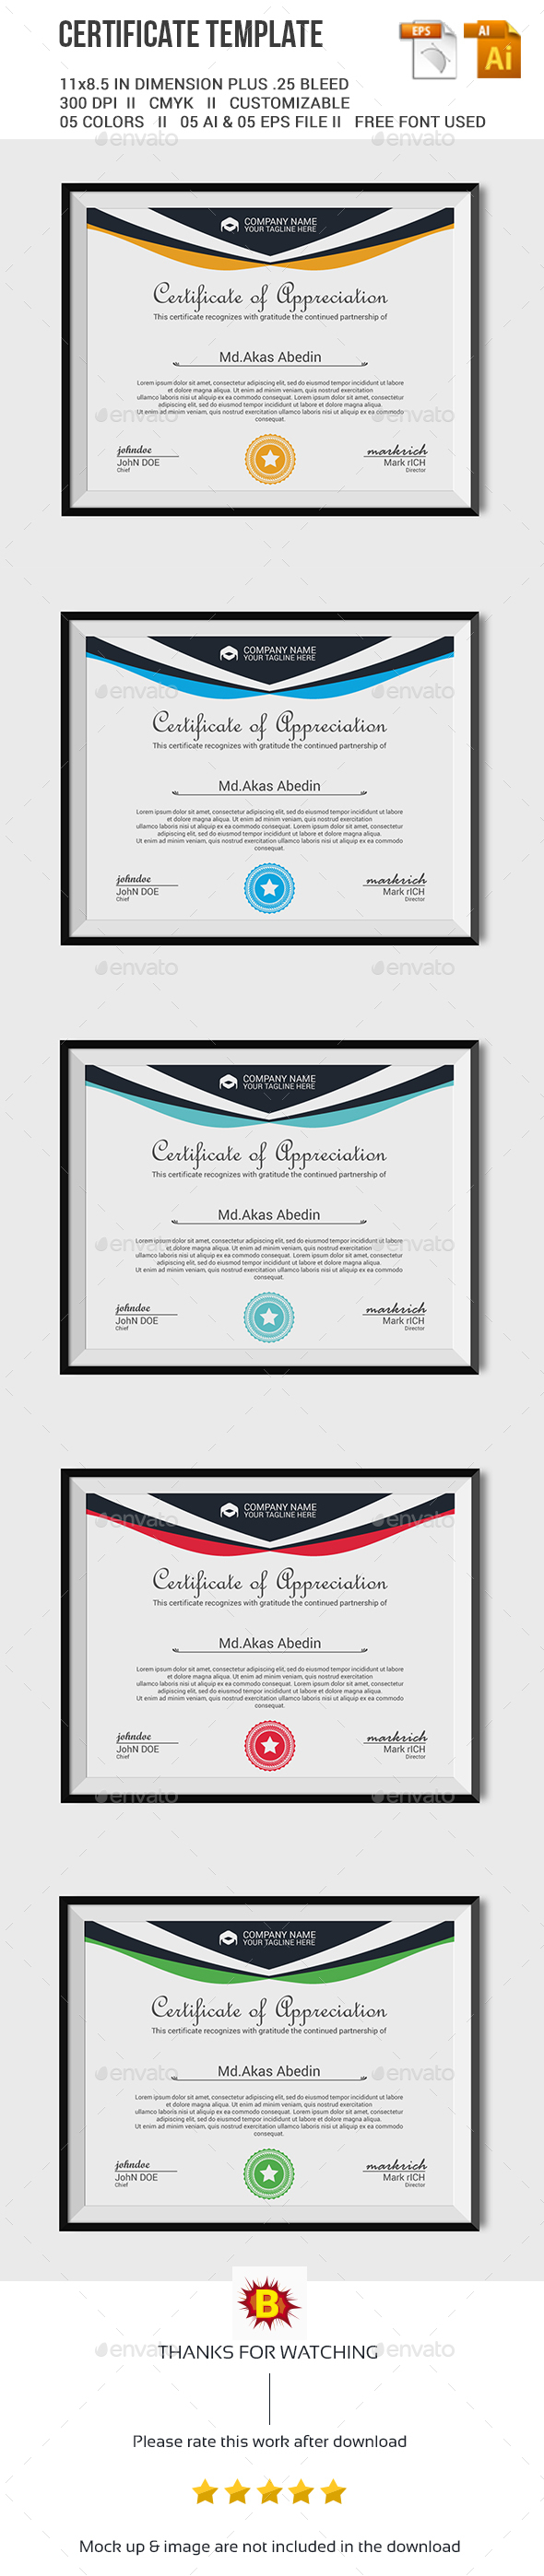 Certificate template vector eps ai download here http certificate template vector eps ai download here httpgraphicriver yadclub Gallery